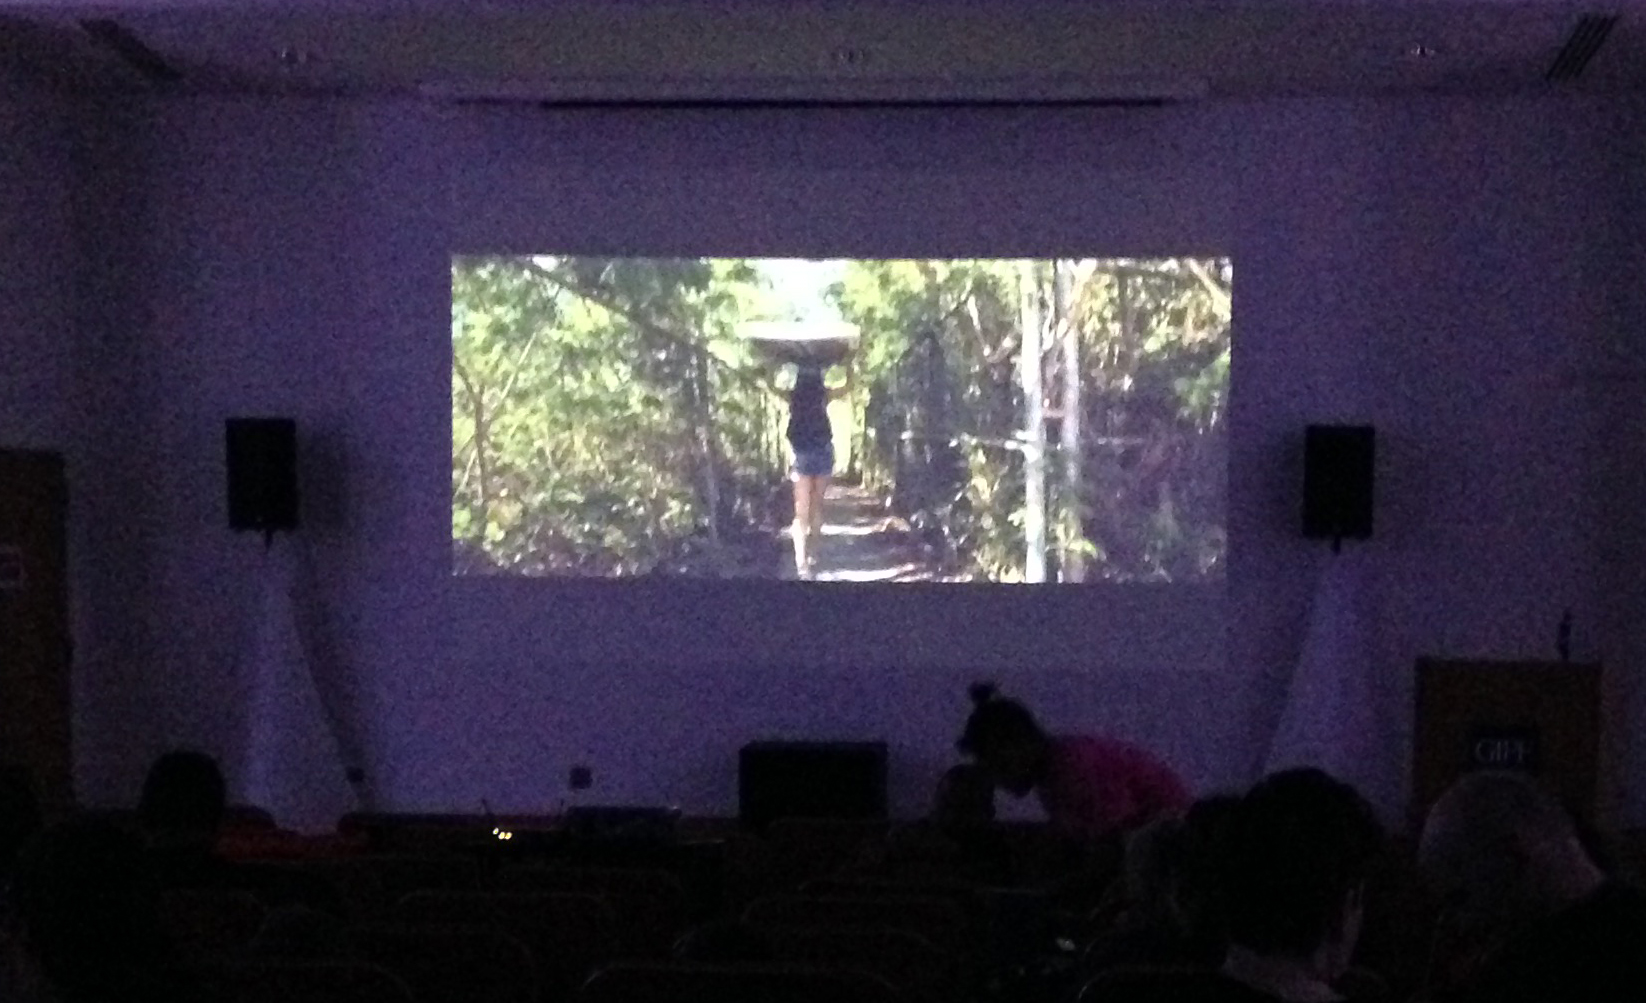 People watch one of the films shown at the UOG Film Festival